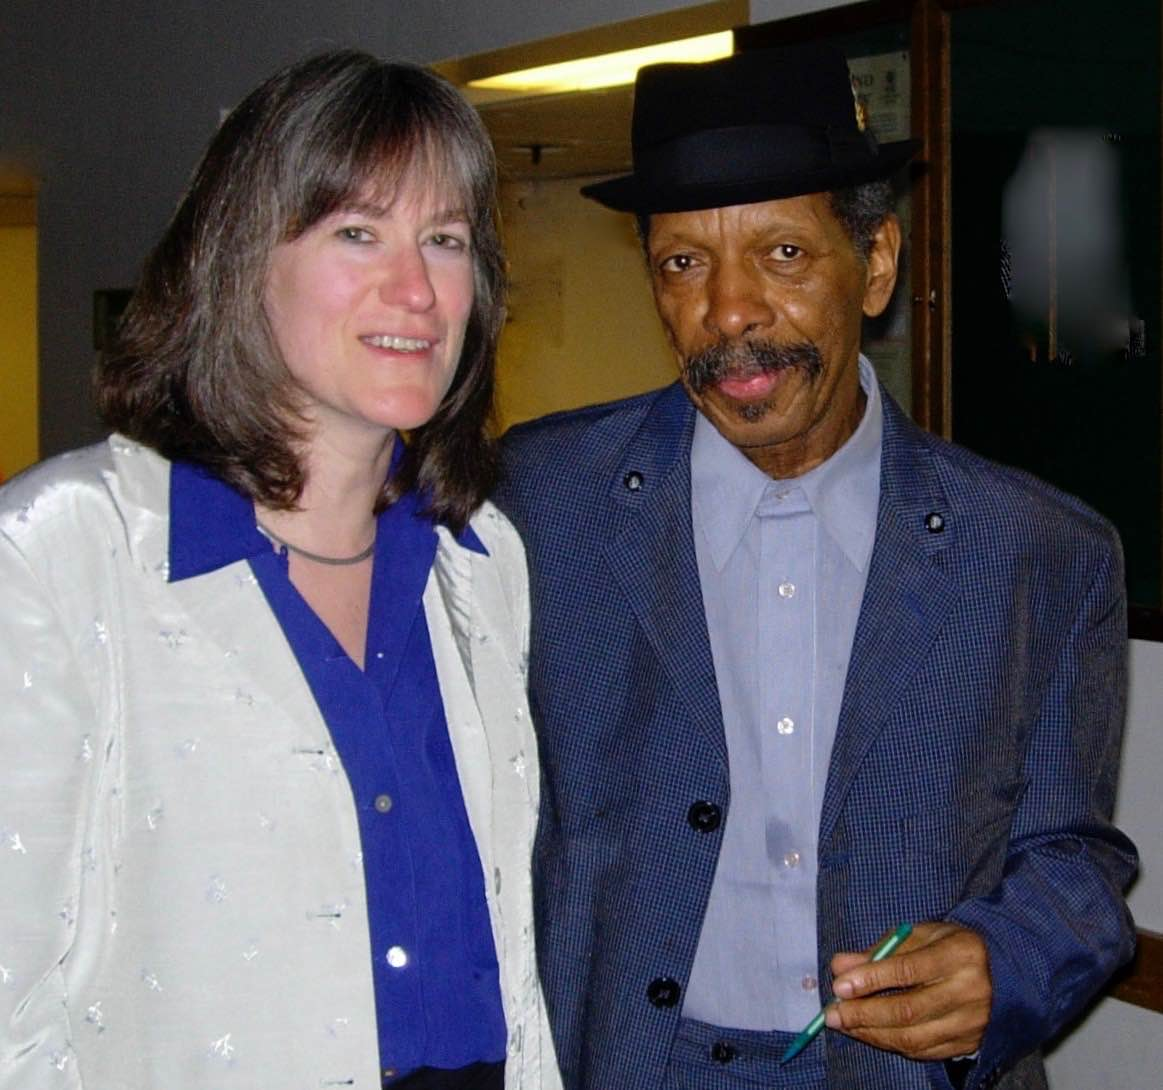 Jean with Ornette Coleman